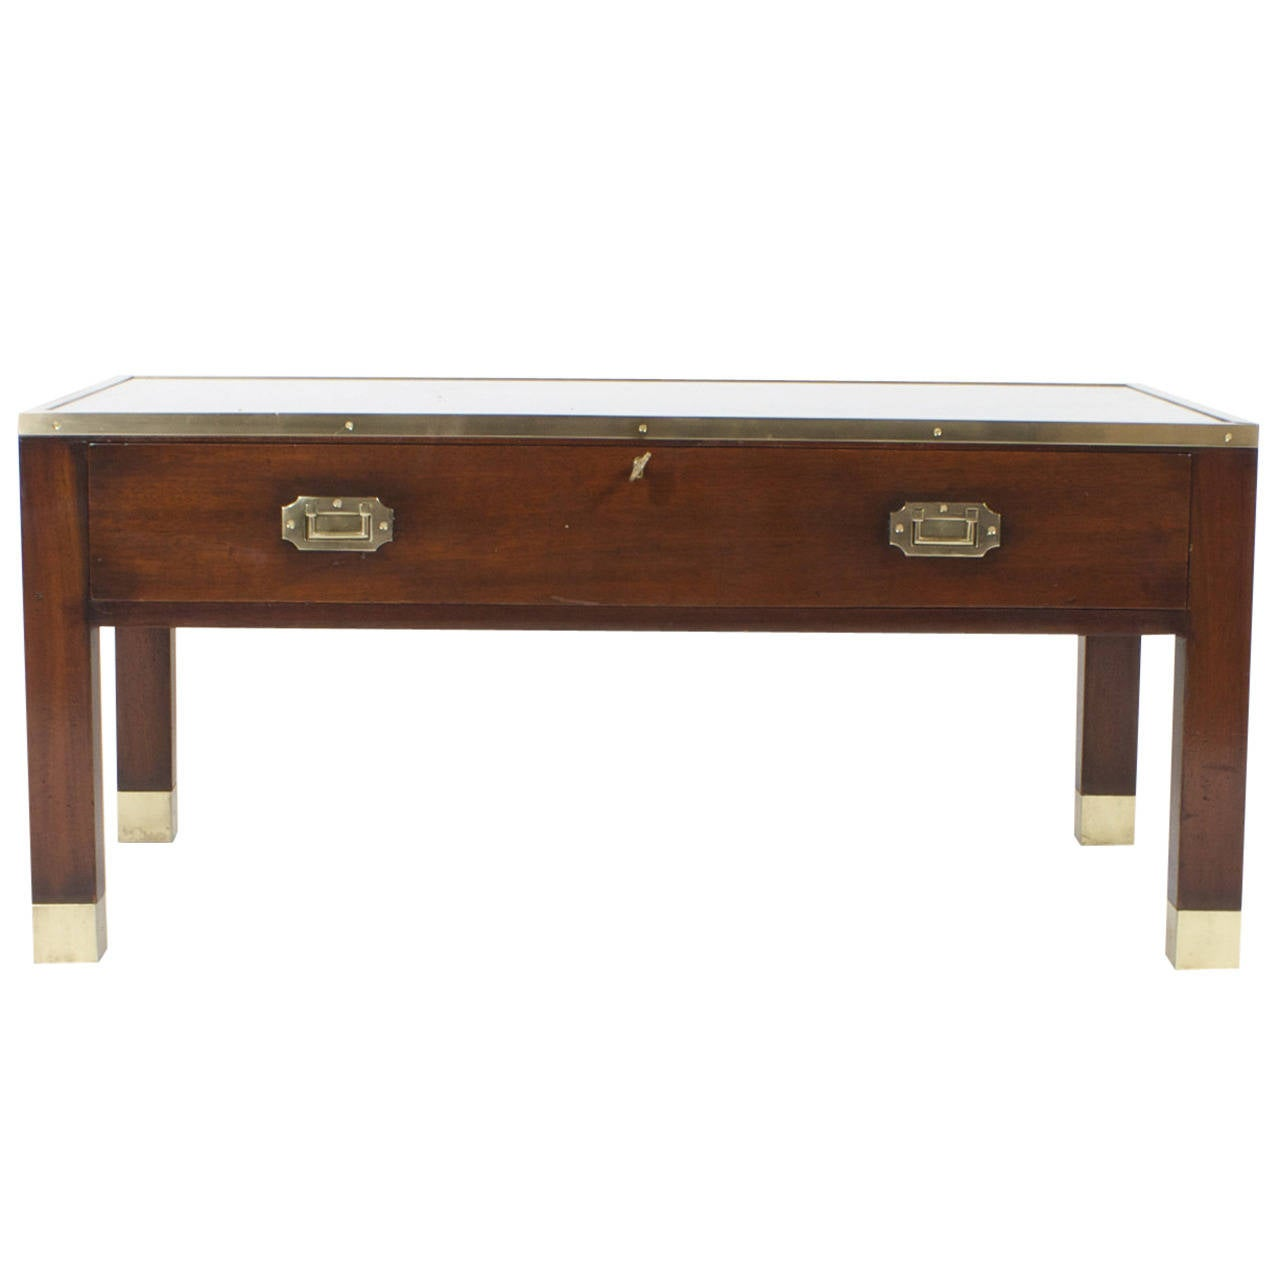 Campaign style cocktail or coffee table with display case Vogue coffee table